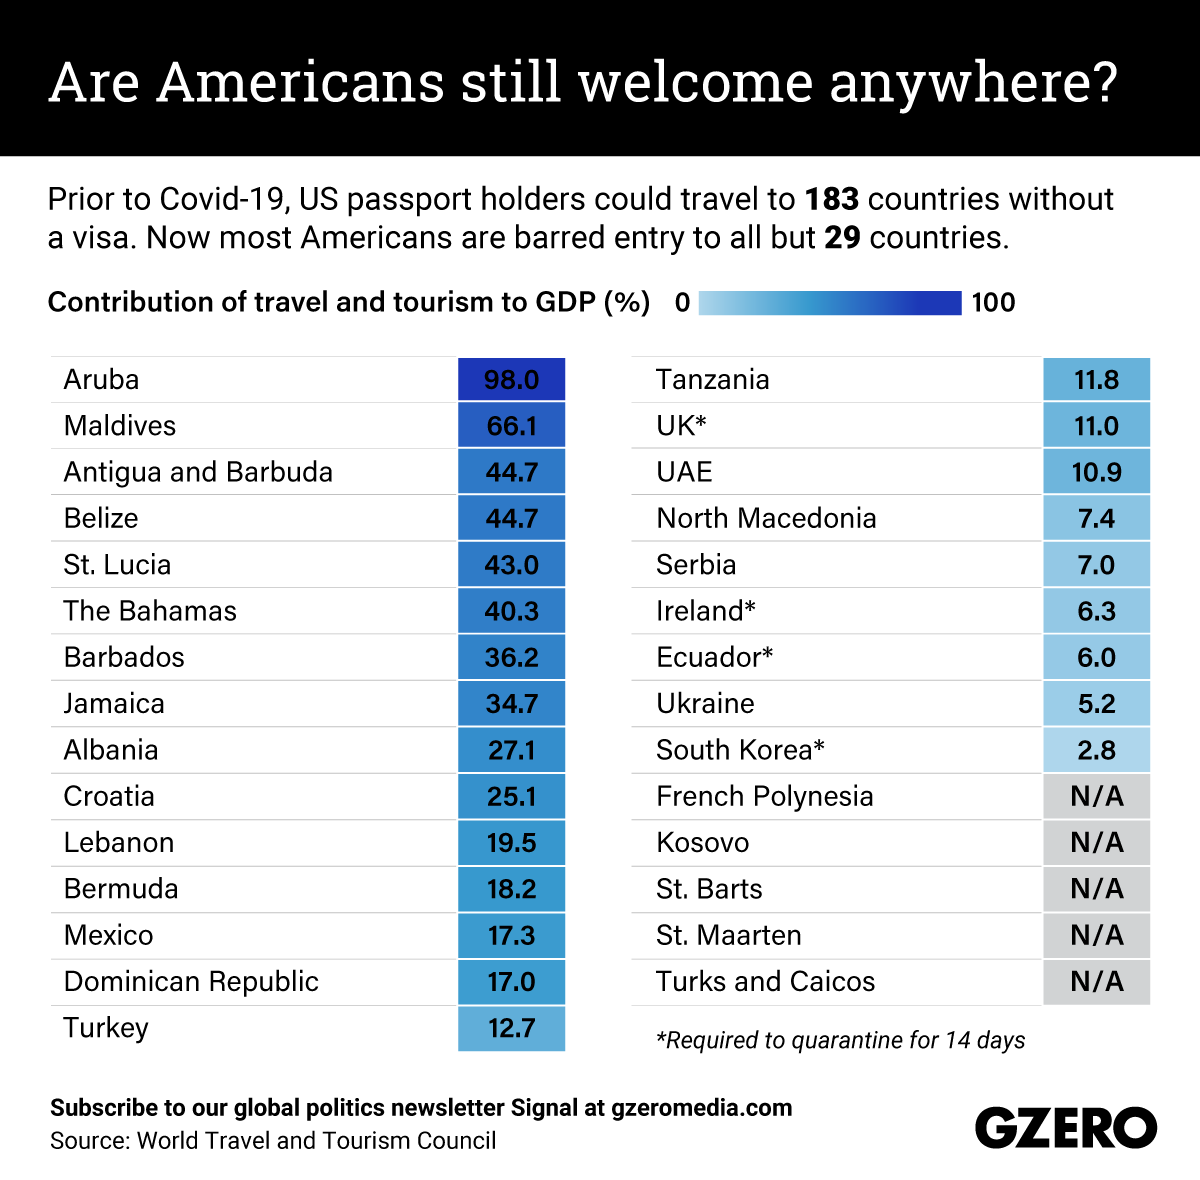 The Graphic Truth: Are Americans still welcome anywhere?